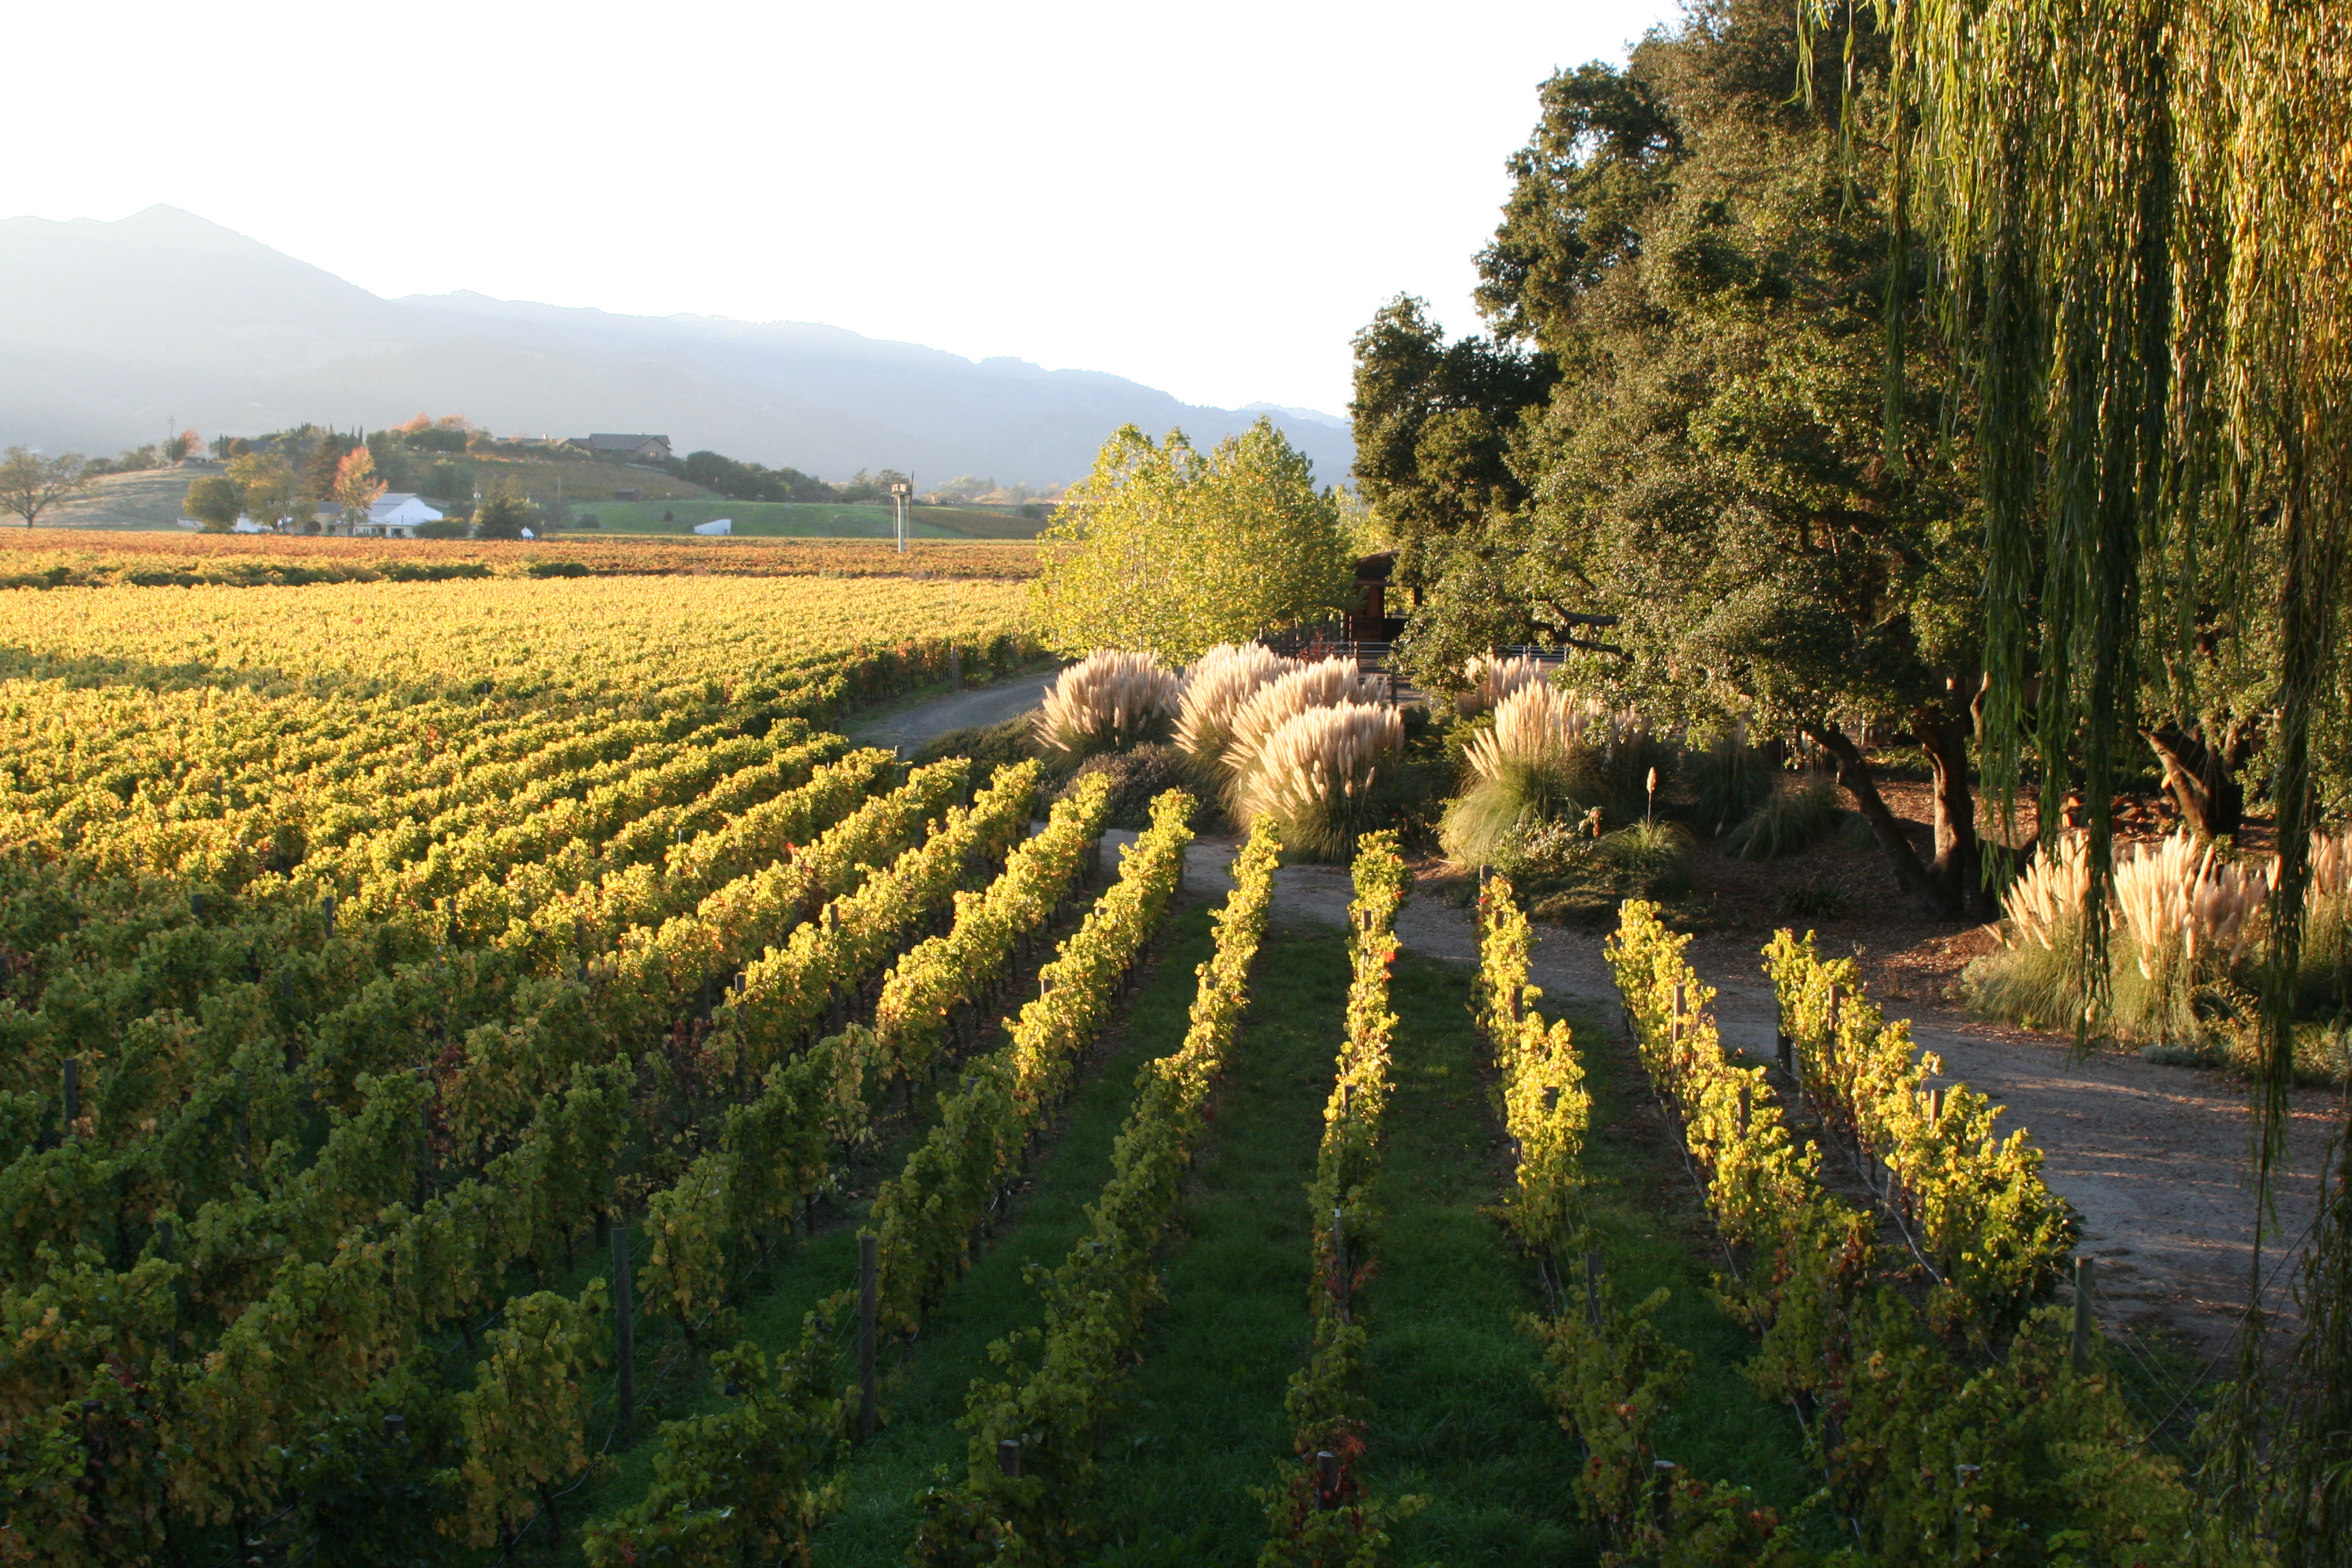 A beautiful vineyard cast in sunlight near a patch of trees and bushes separated by a narrow pathway with mountains in the background.